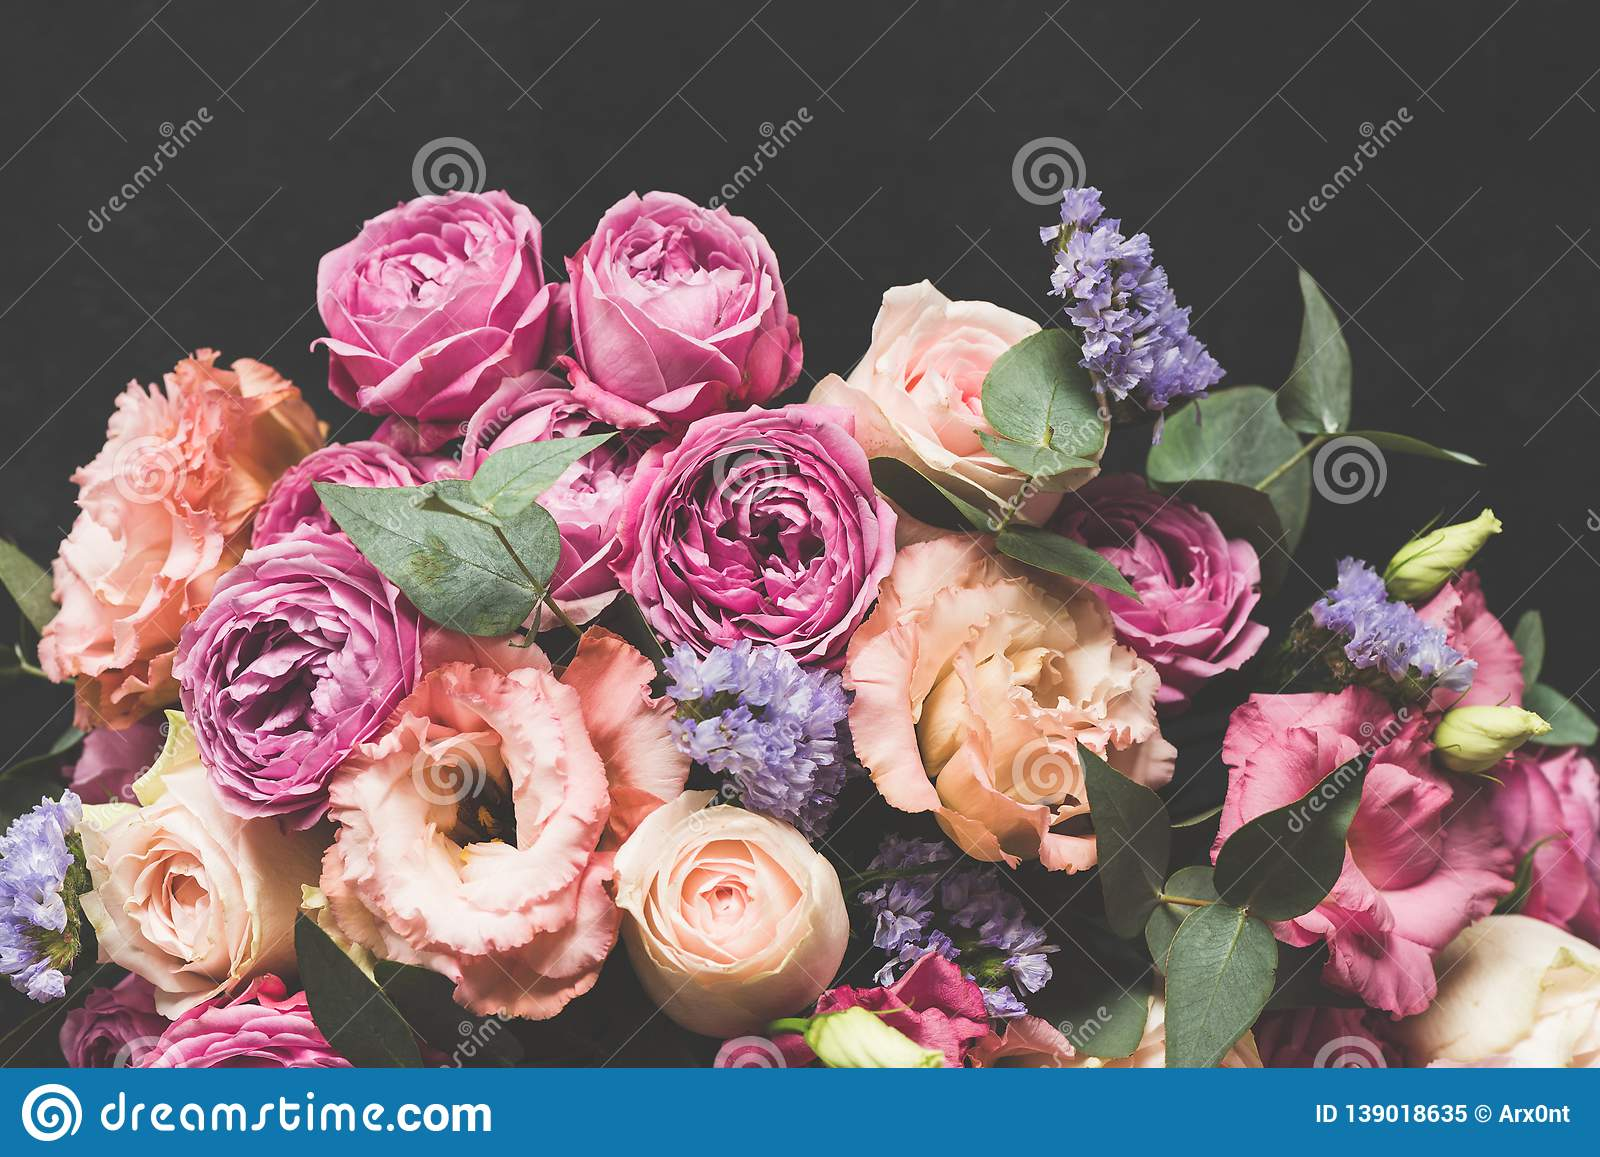 Bouquet Of Pink And Purple Peonies With Eucalyptus Stock Image Image Of Colorful Card 139018635